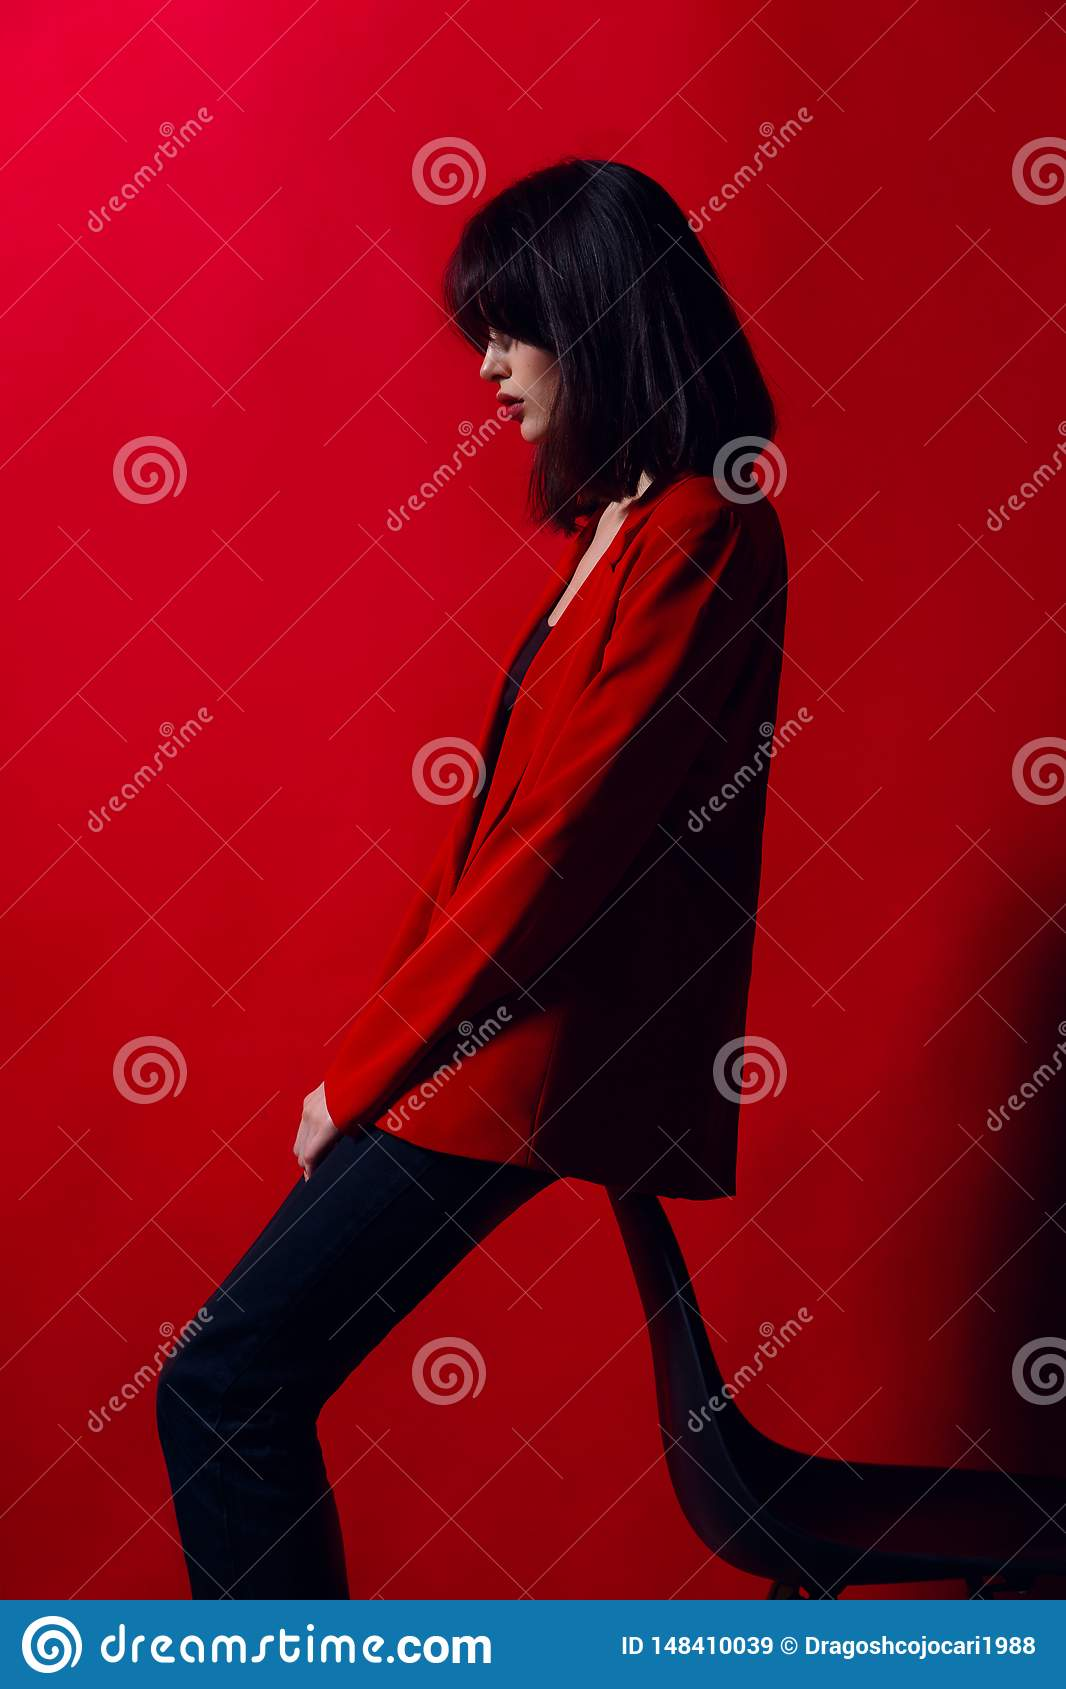 Brunette slim young model posing in fashionable red suit and black pants, near chair, on a red background.